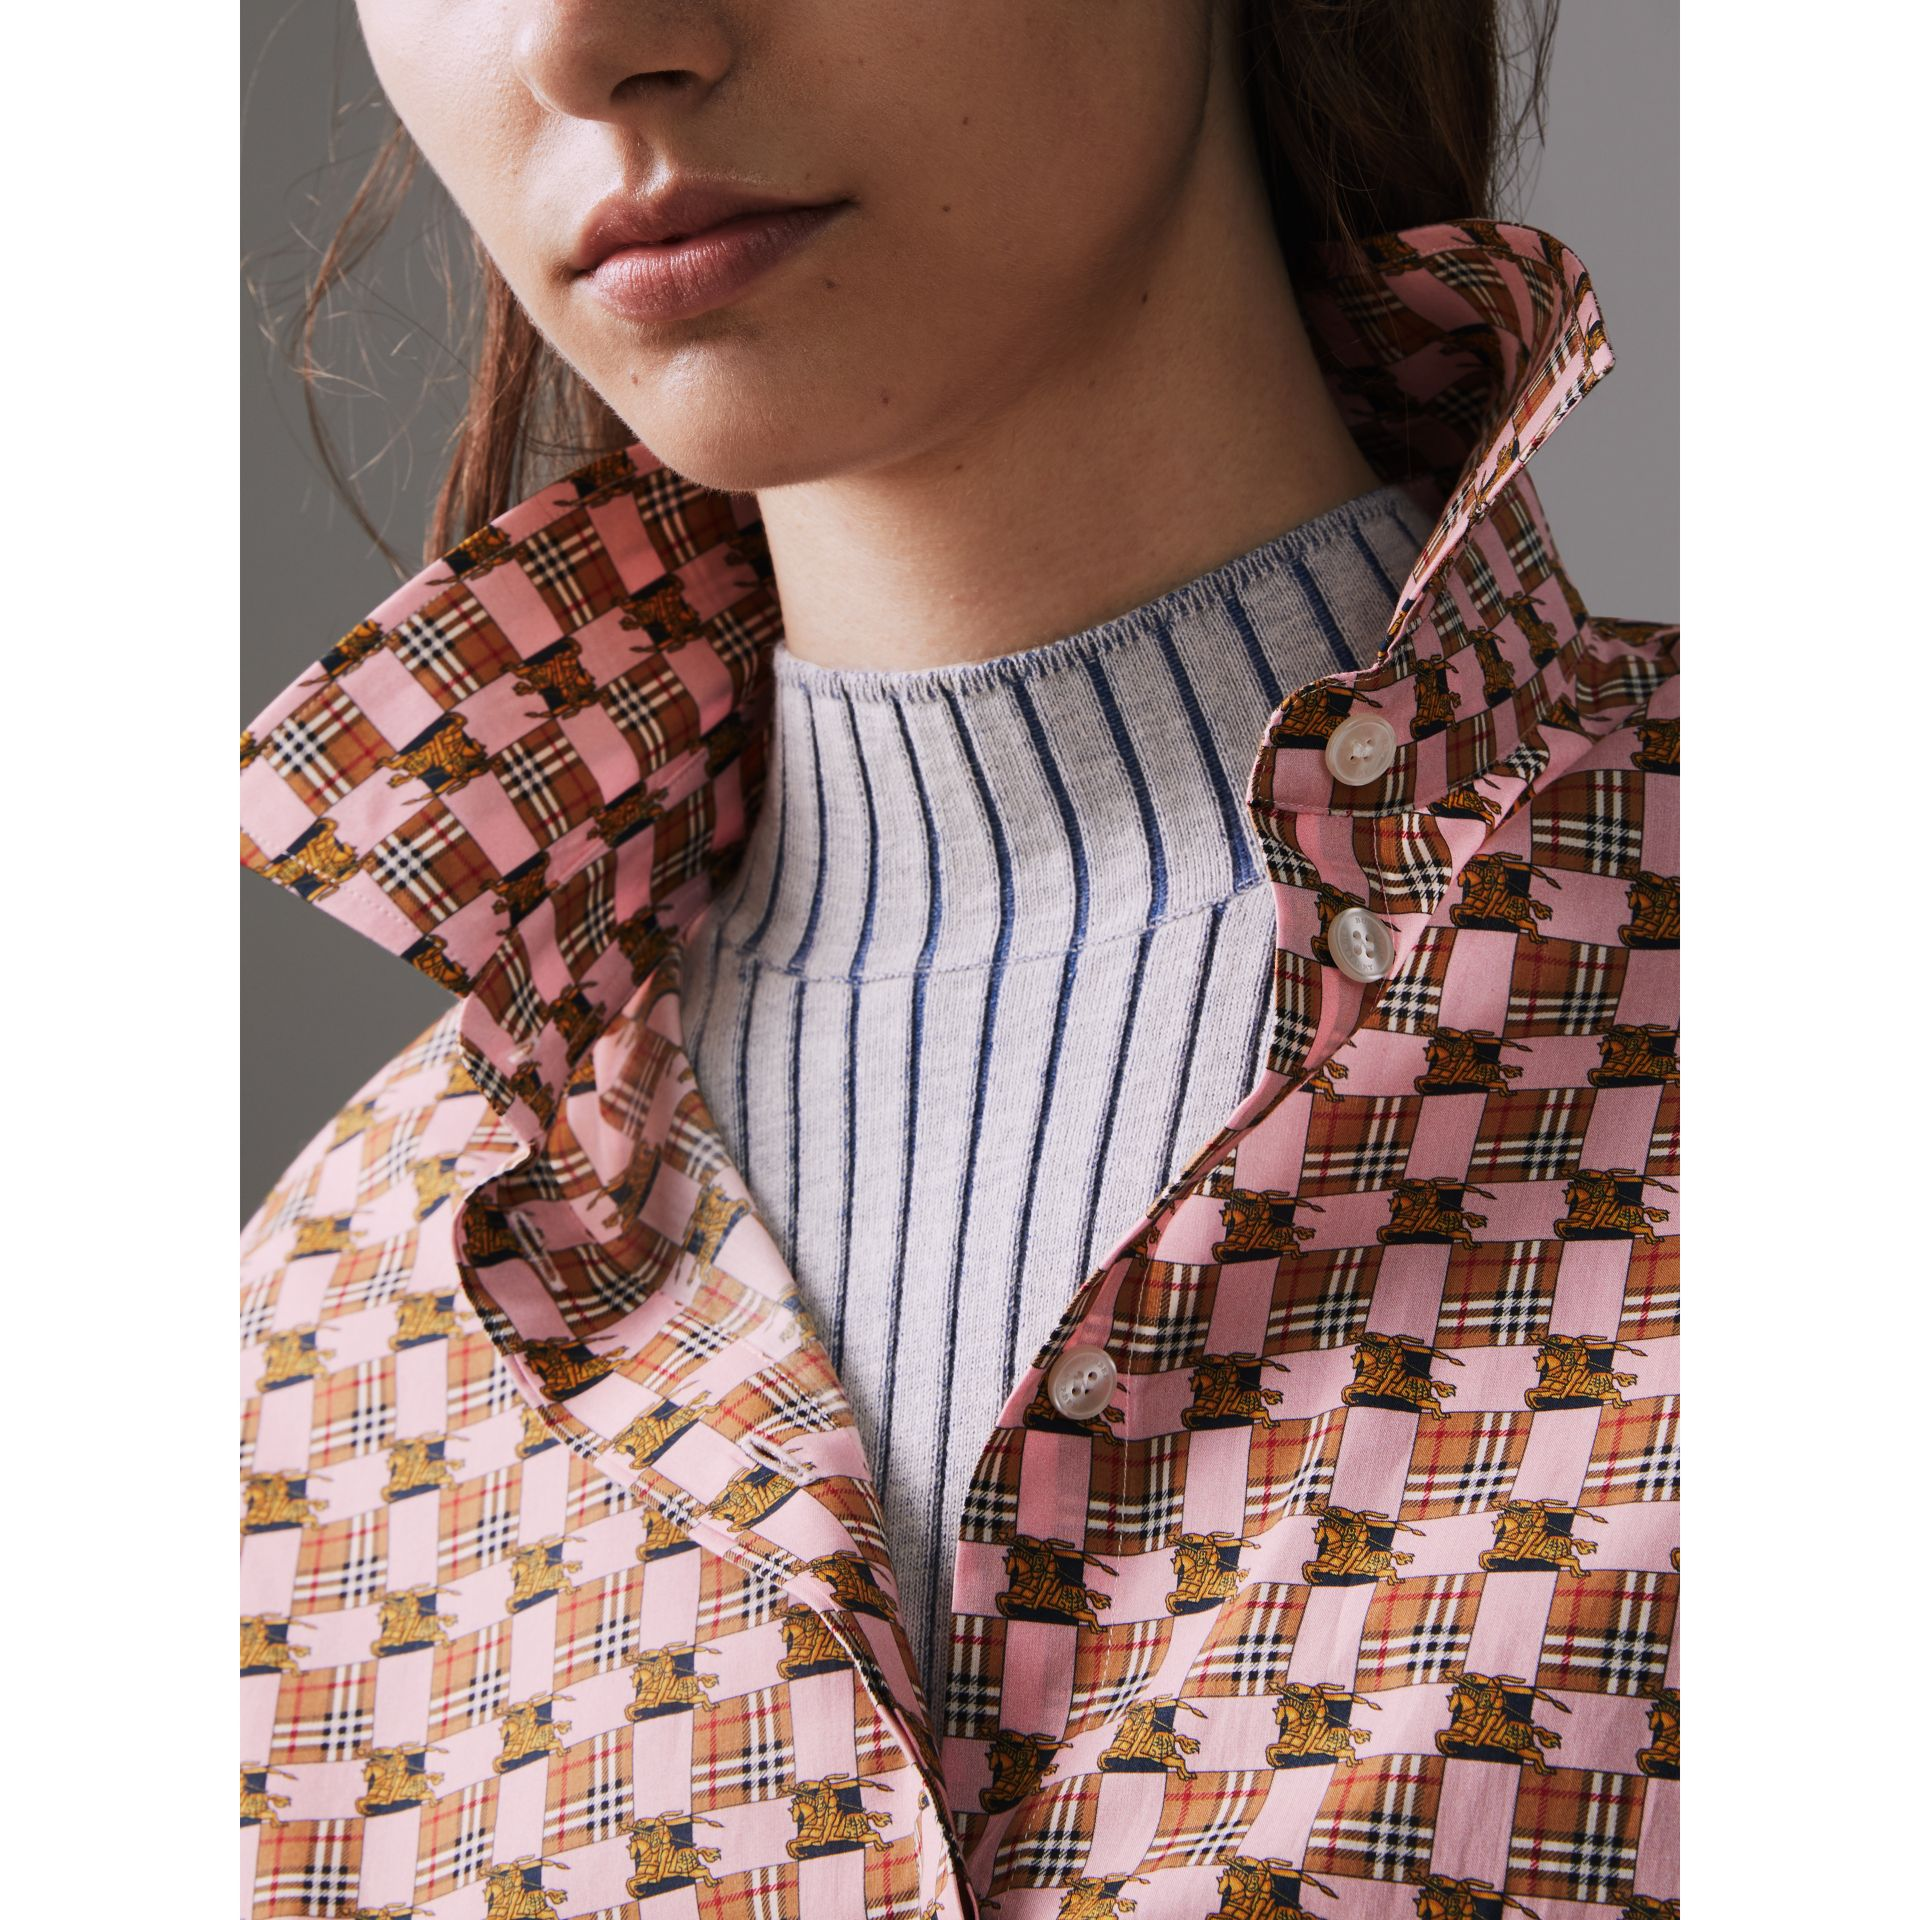 Tiled Archive Print Cotton Shirt in Pink - Women | Burberry United Kingdom - gallery image 1